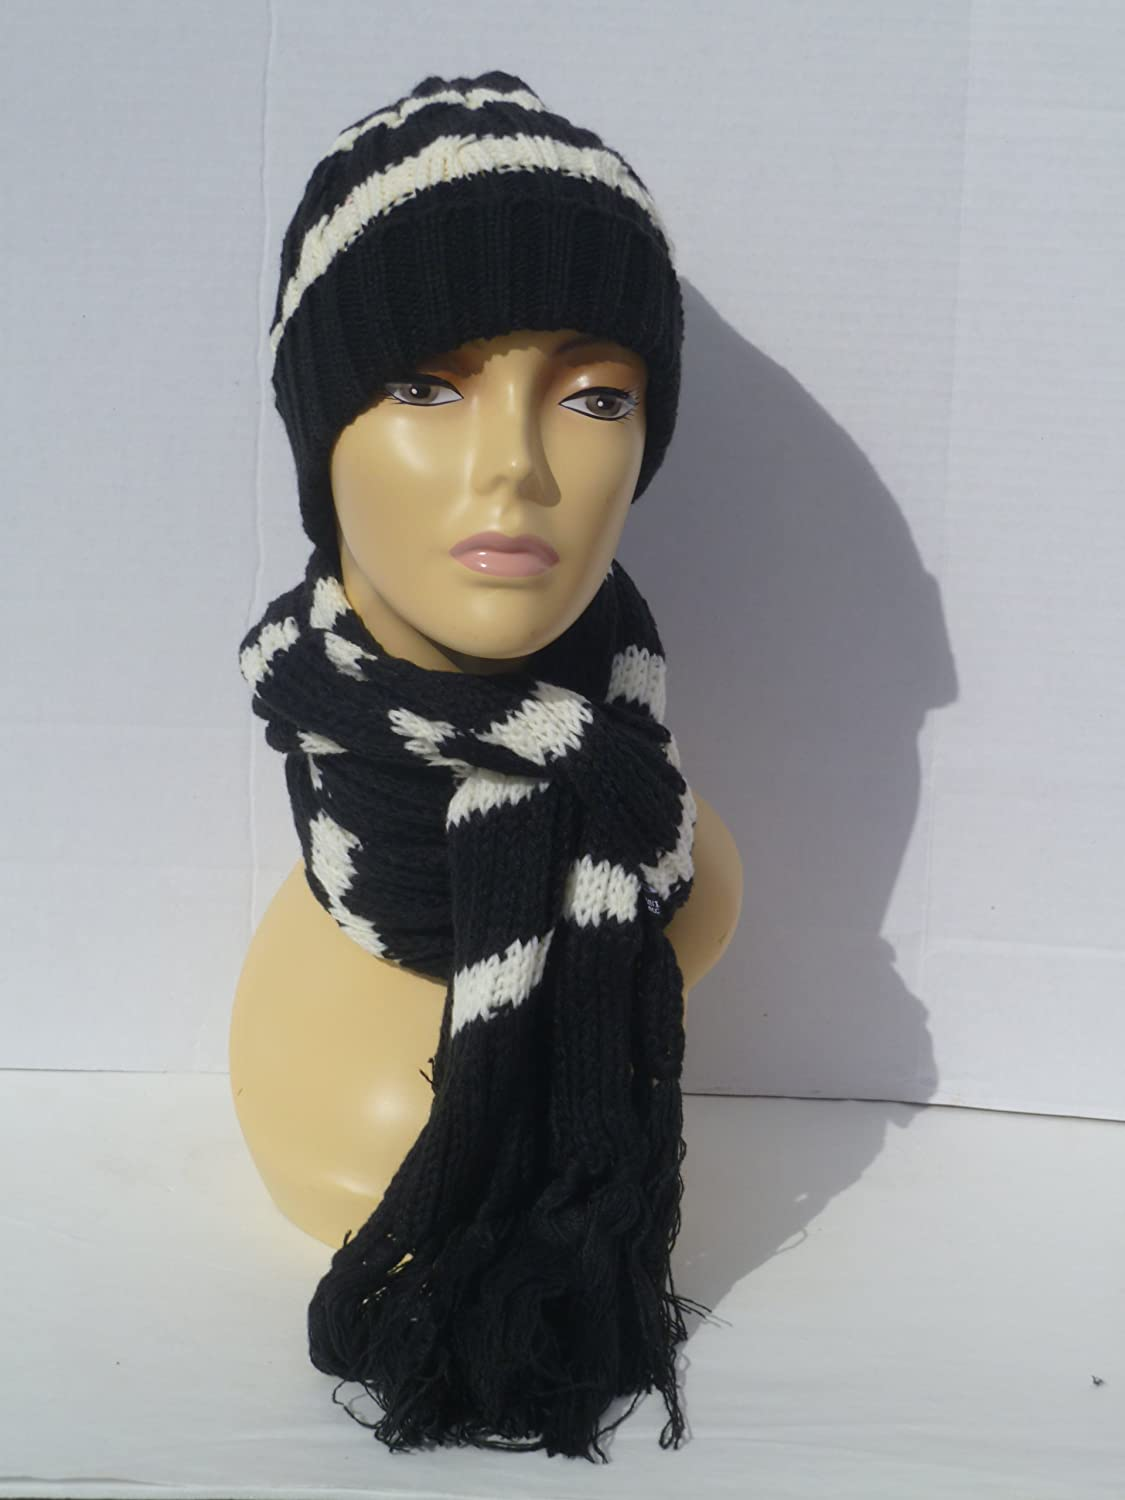 082ecf7b5c5 Amazon.com  Women Hat and Scarf Set Ladies Winter Scarf and Hat  (White Black)  Beauty